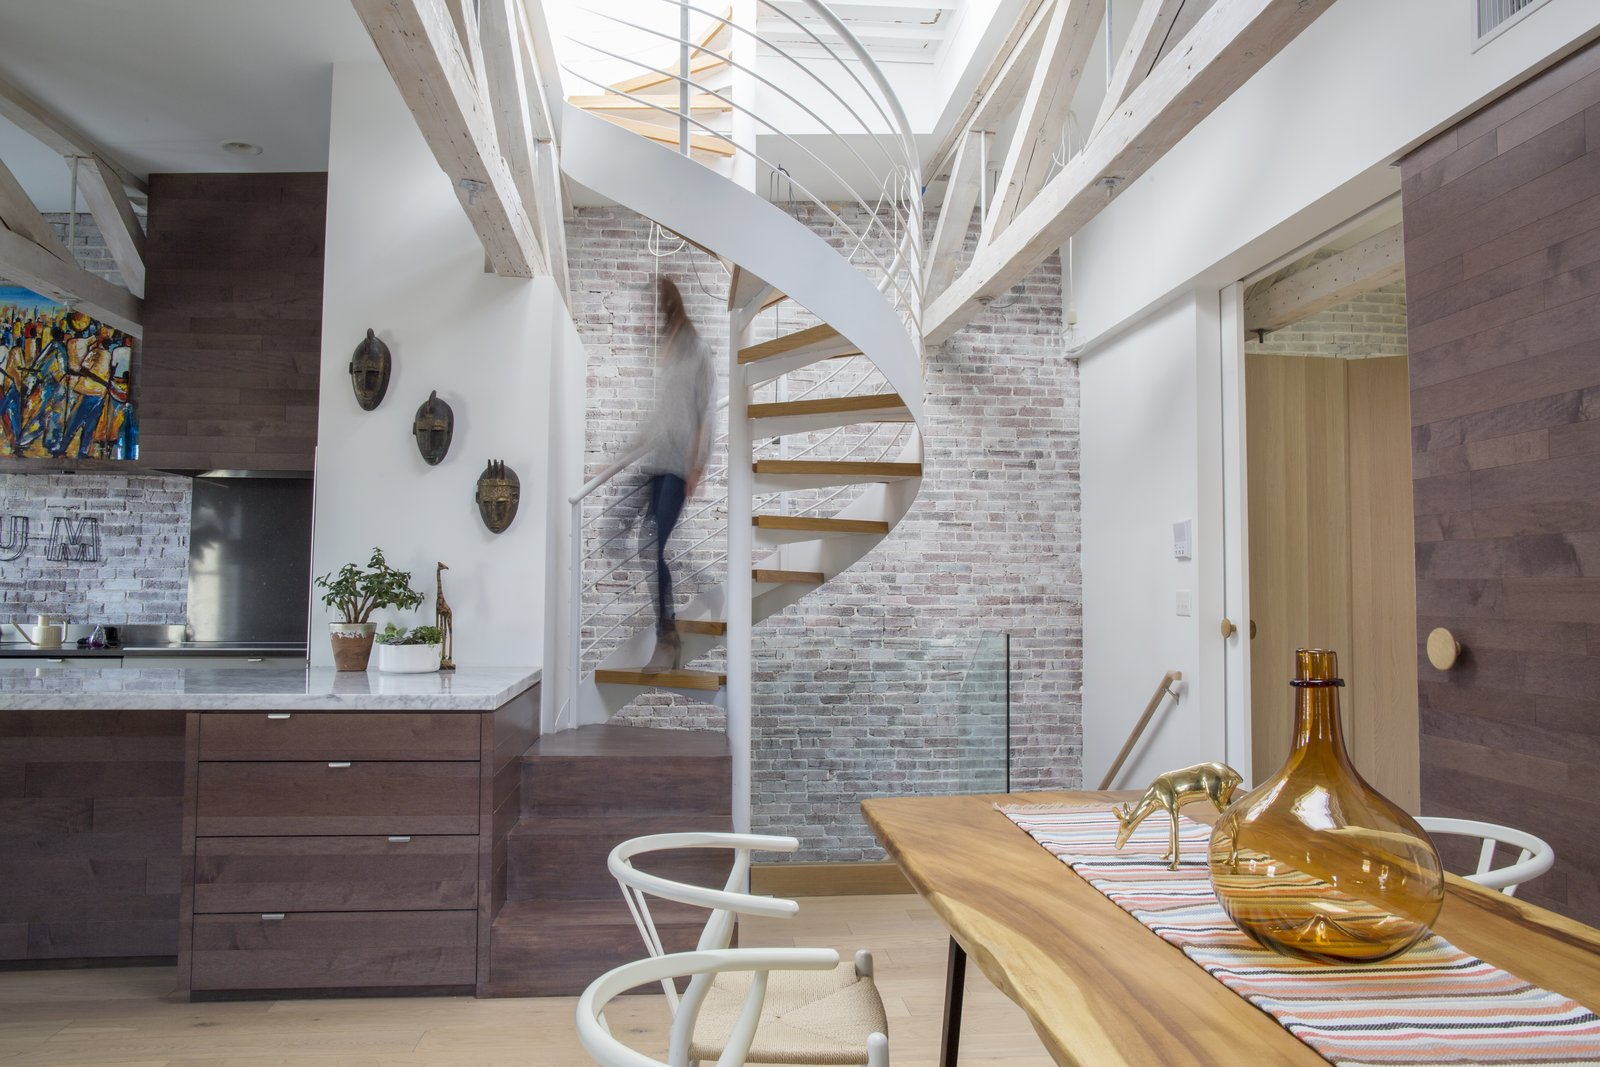 Staircase, Metal Railing, and Wood Tread When Alan Ricks and Cristina de la Cierva moved into their Boston condo, a ship's ladder was taking up space in the main living area. Following a lengthy renovation, a spiral staircase provides rooftop access.  Photo 2 of 5 in This Modern Boston Renovation Expertly Mixes in Colorful Craft Finds